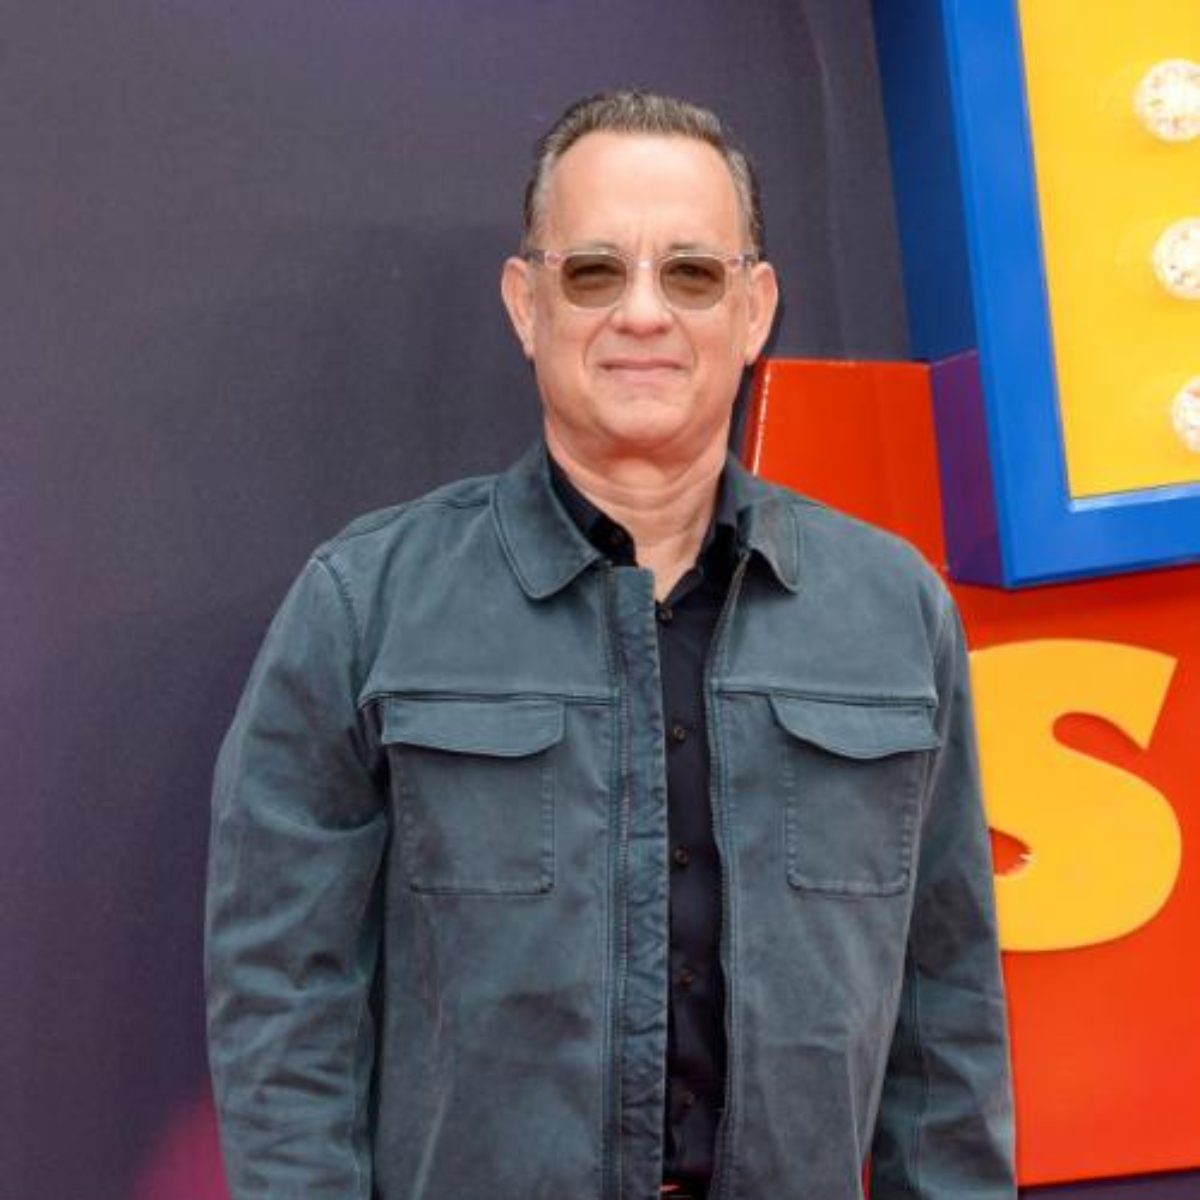 A Beautiful Day In The Neighborhood Tom Hanks Says This On Knowing He S Related To Fred Rogers Pinkvilla